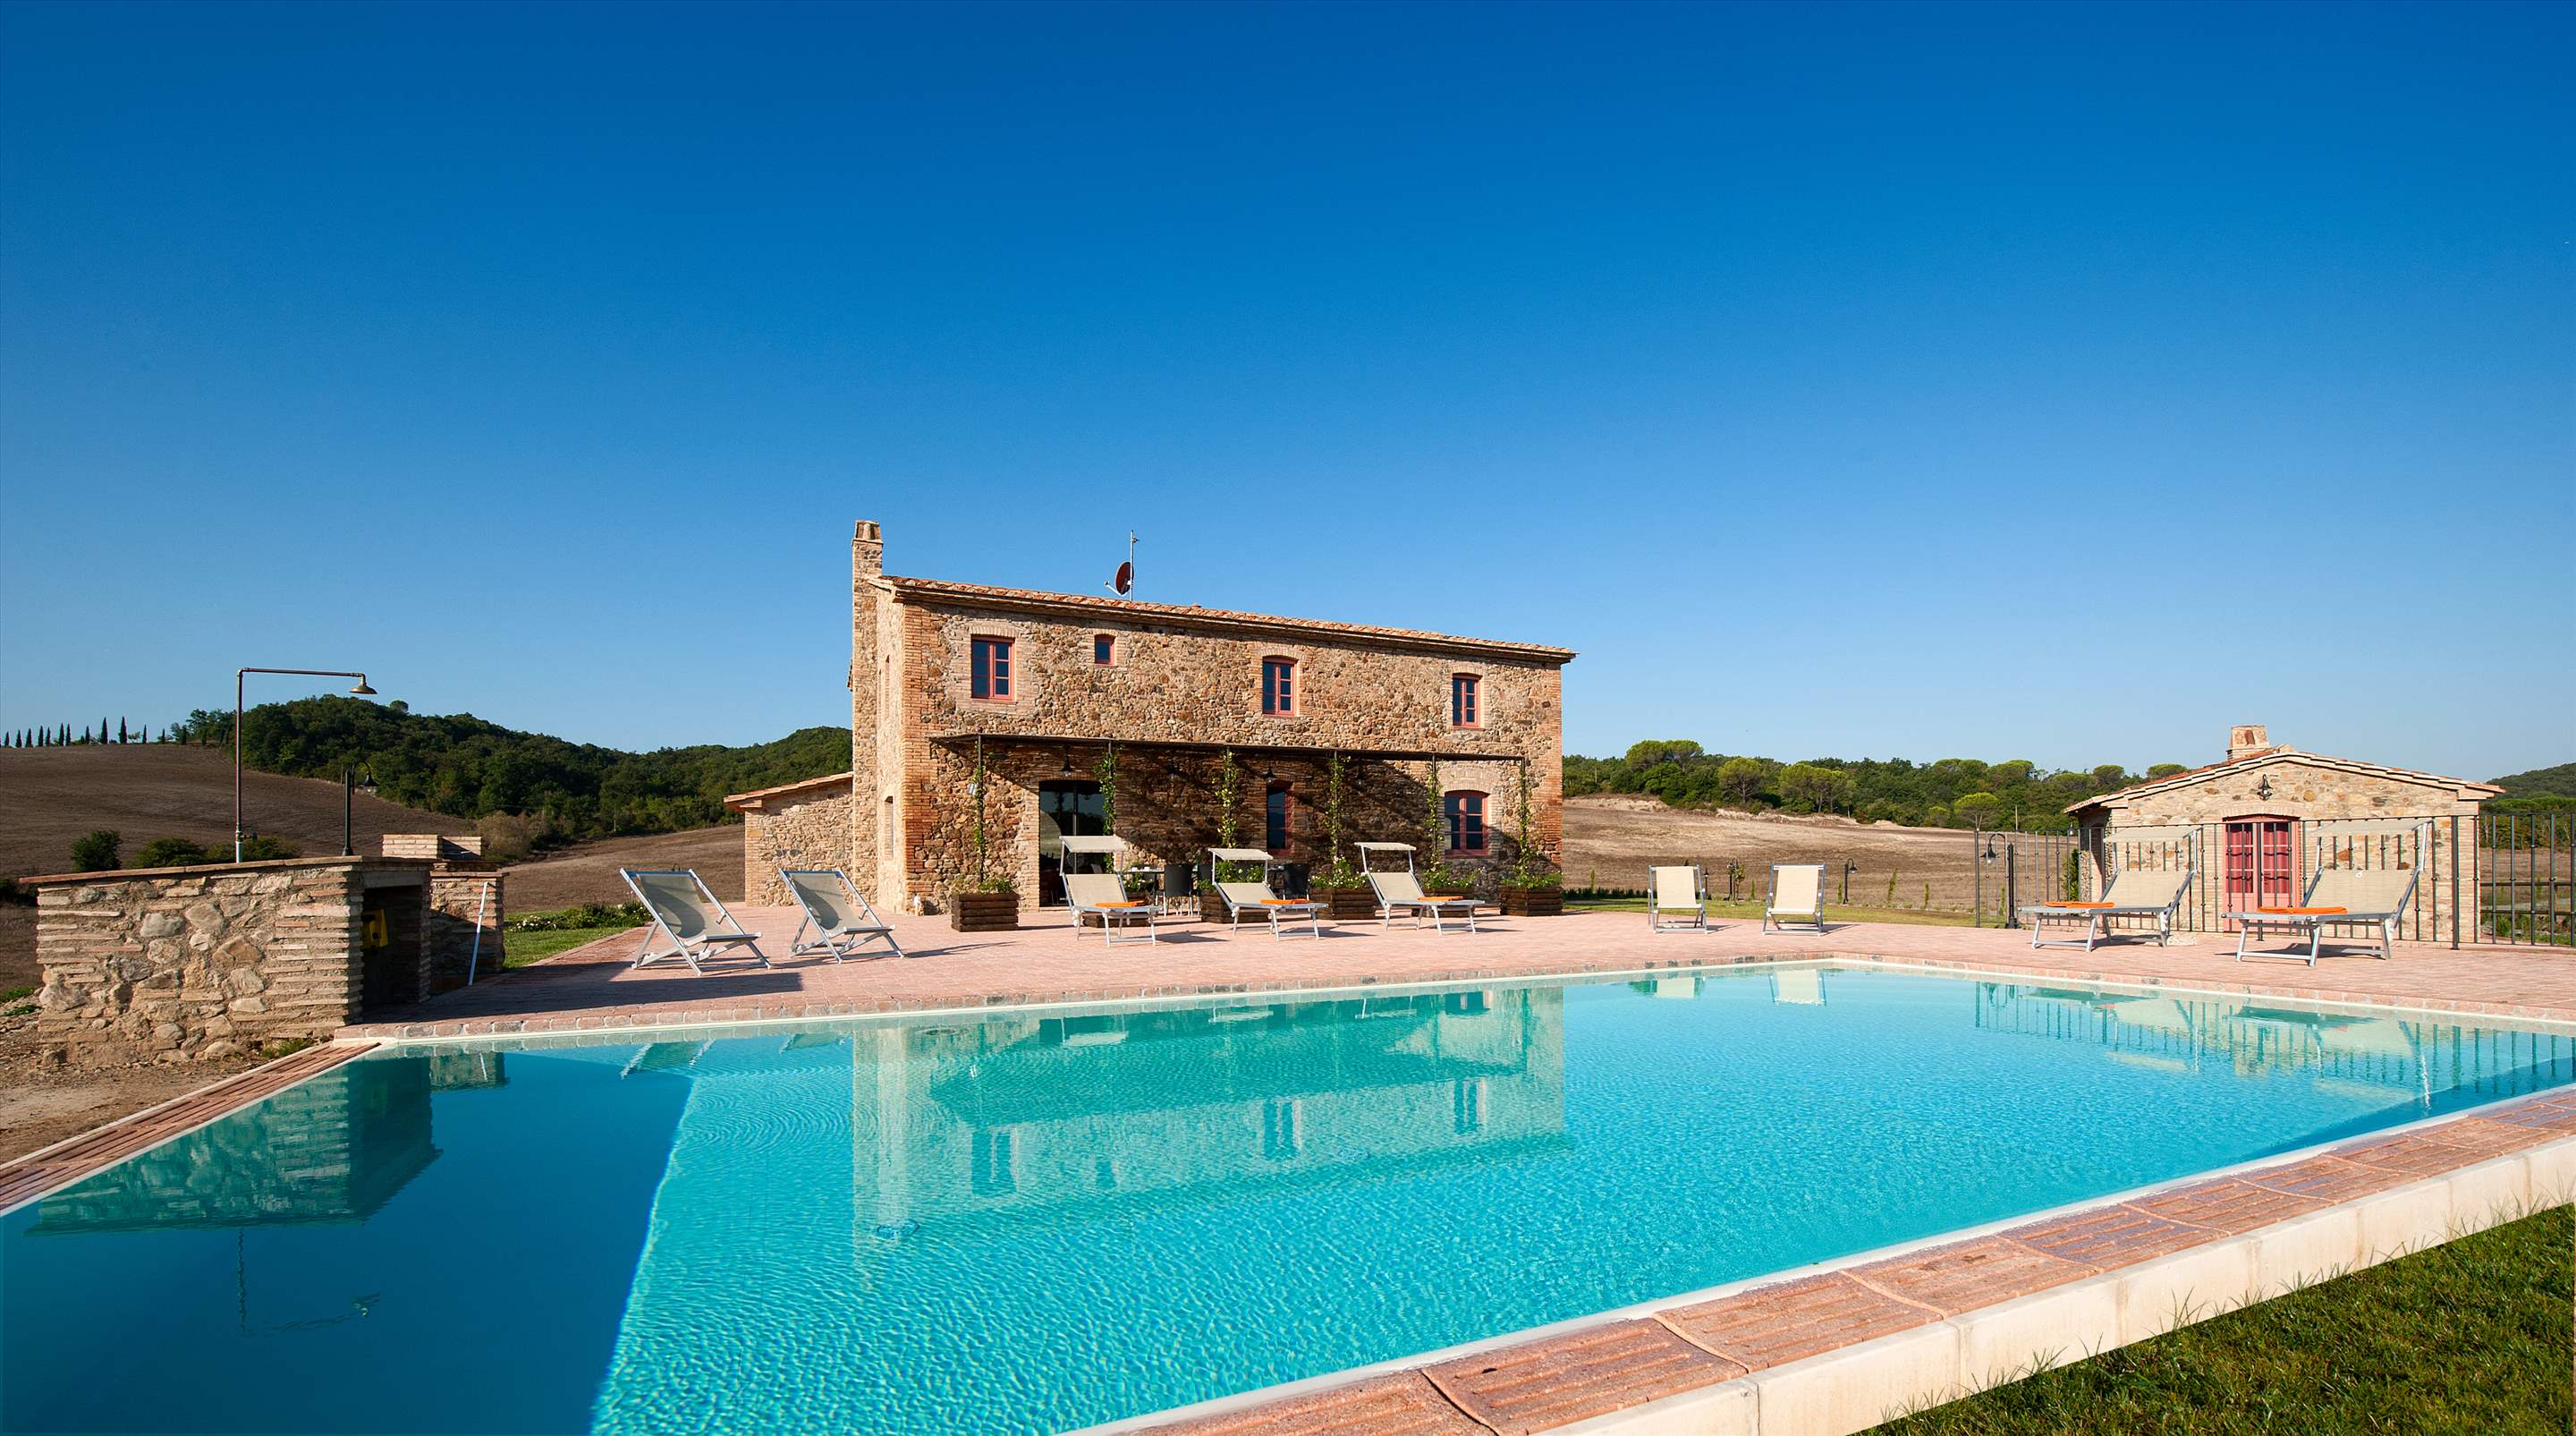 Podere I Gotti, 5 bedroom villa in Tuscany Coast, Tuscany Photo #1